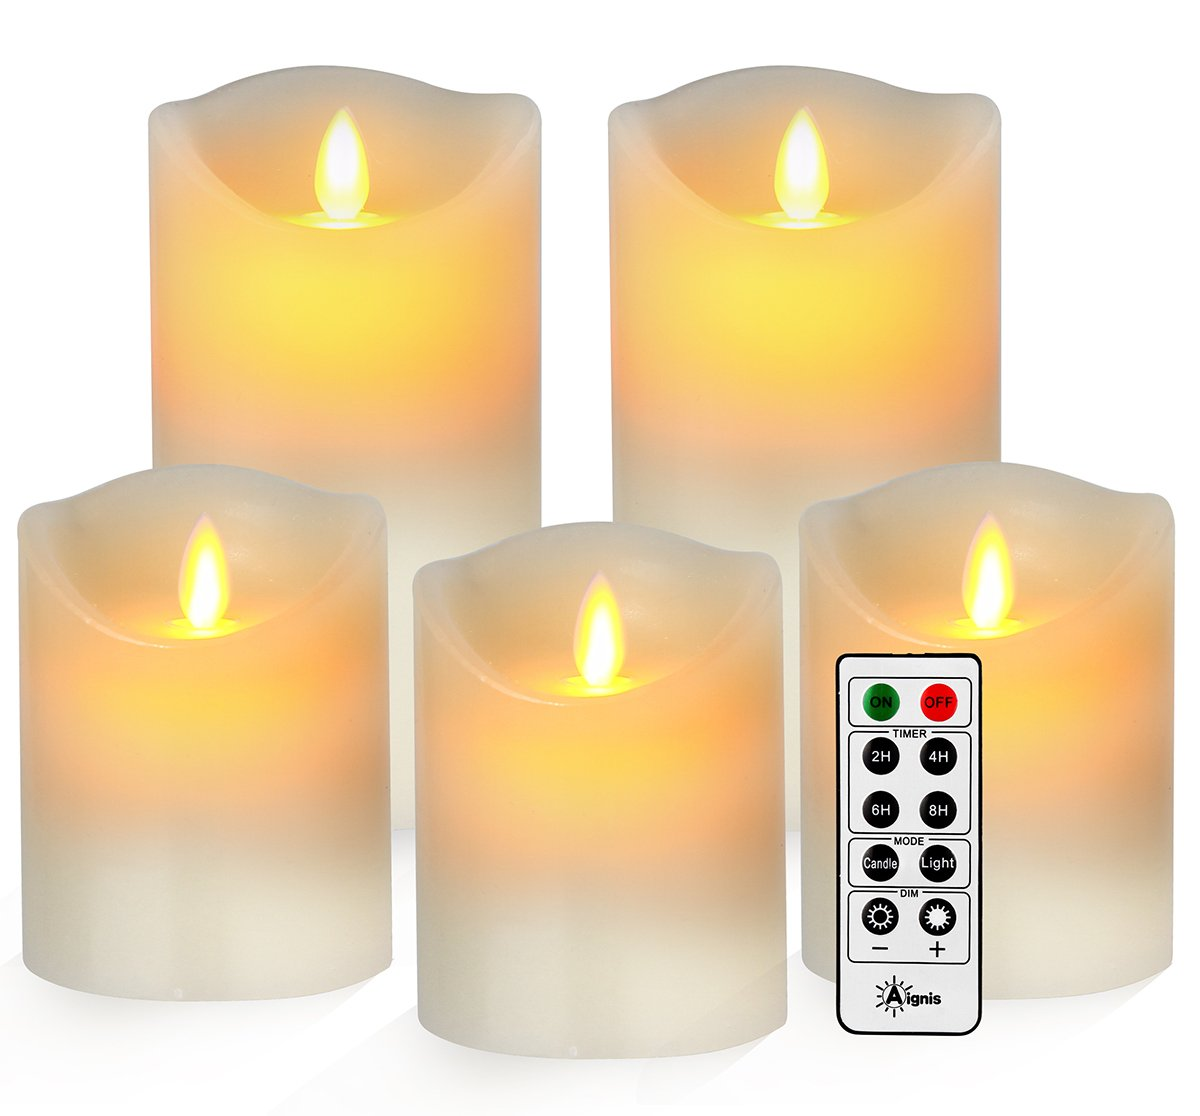 Battery Candles, Flameless Candles Realistic Moving Set of 5 (4/4/4/6/6) Flickering Candles With 10-key Remote Control with 24-hour Timer Function by Aignis (ivory)